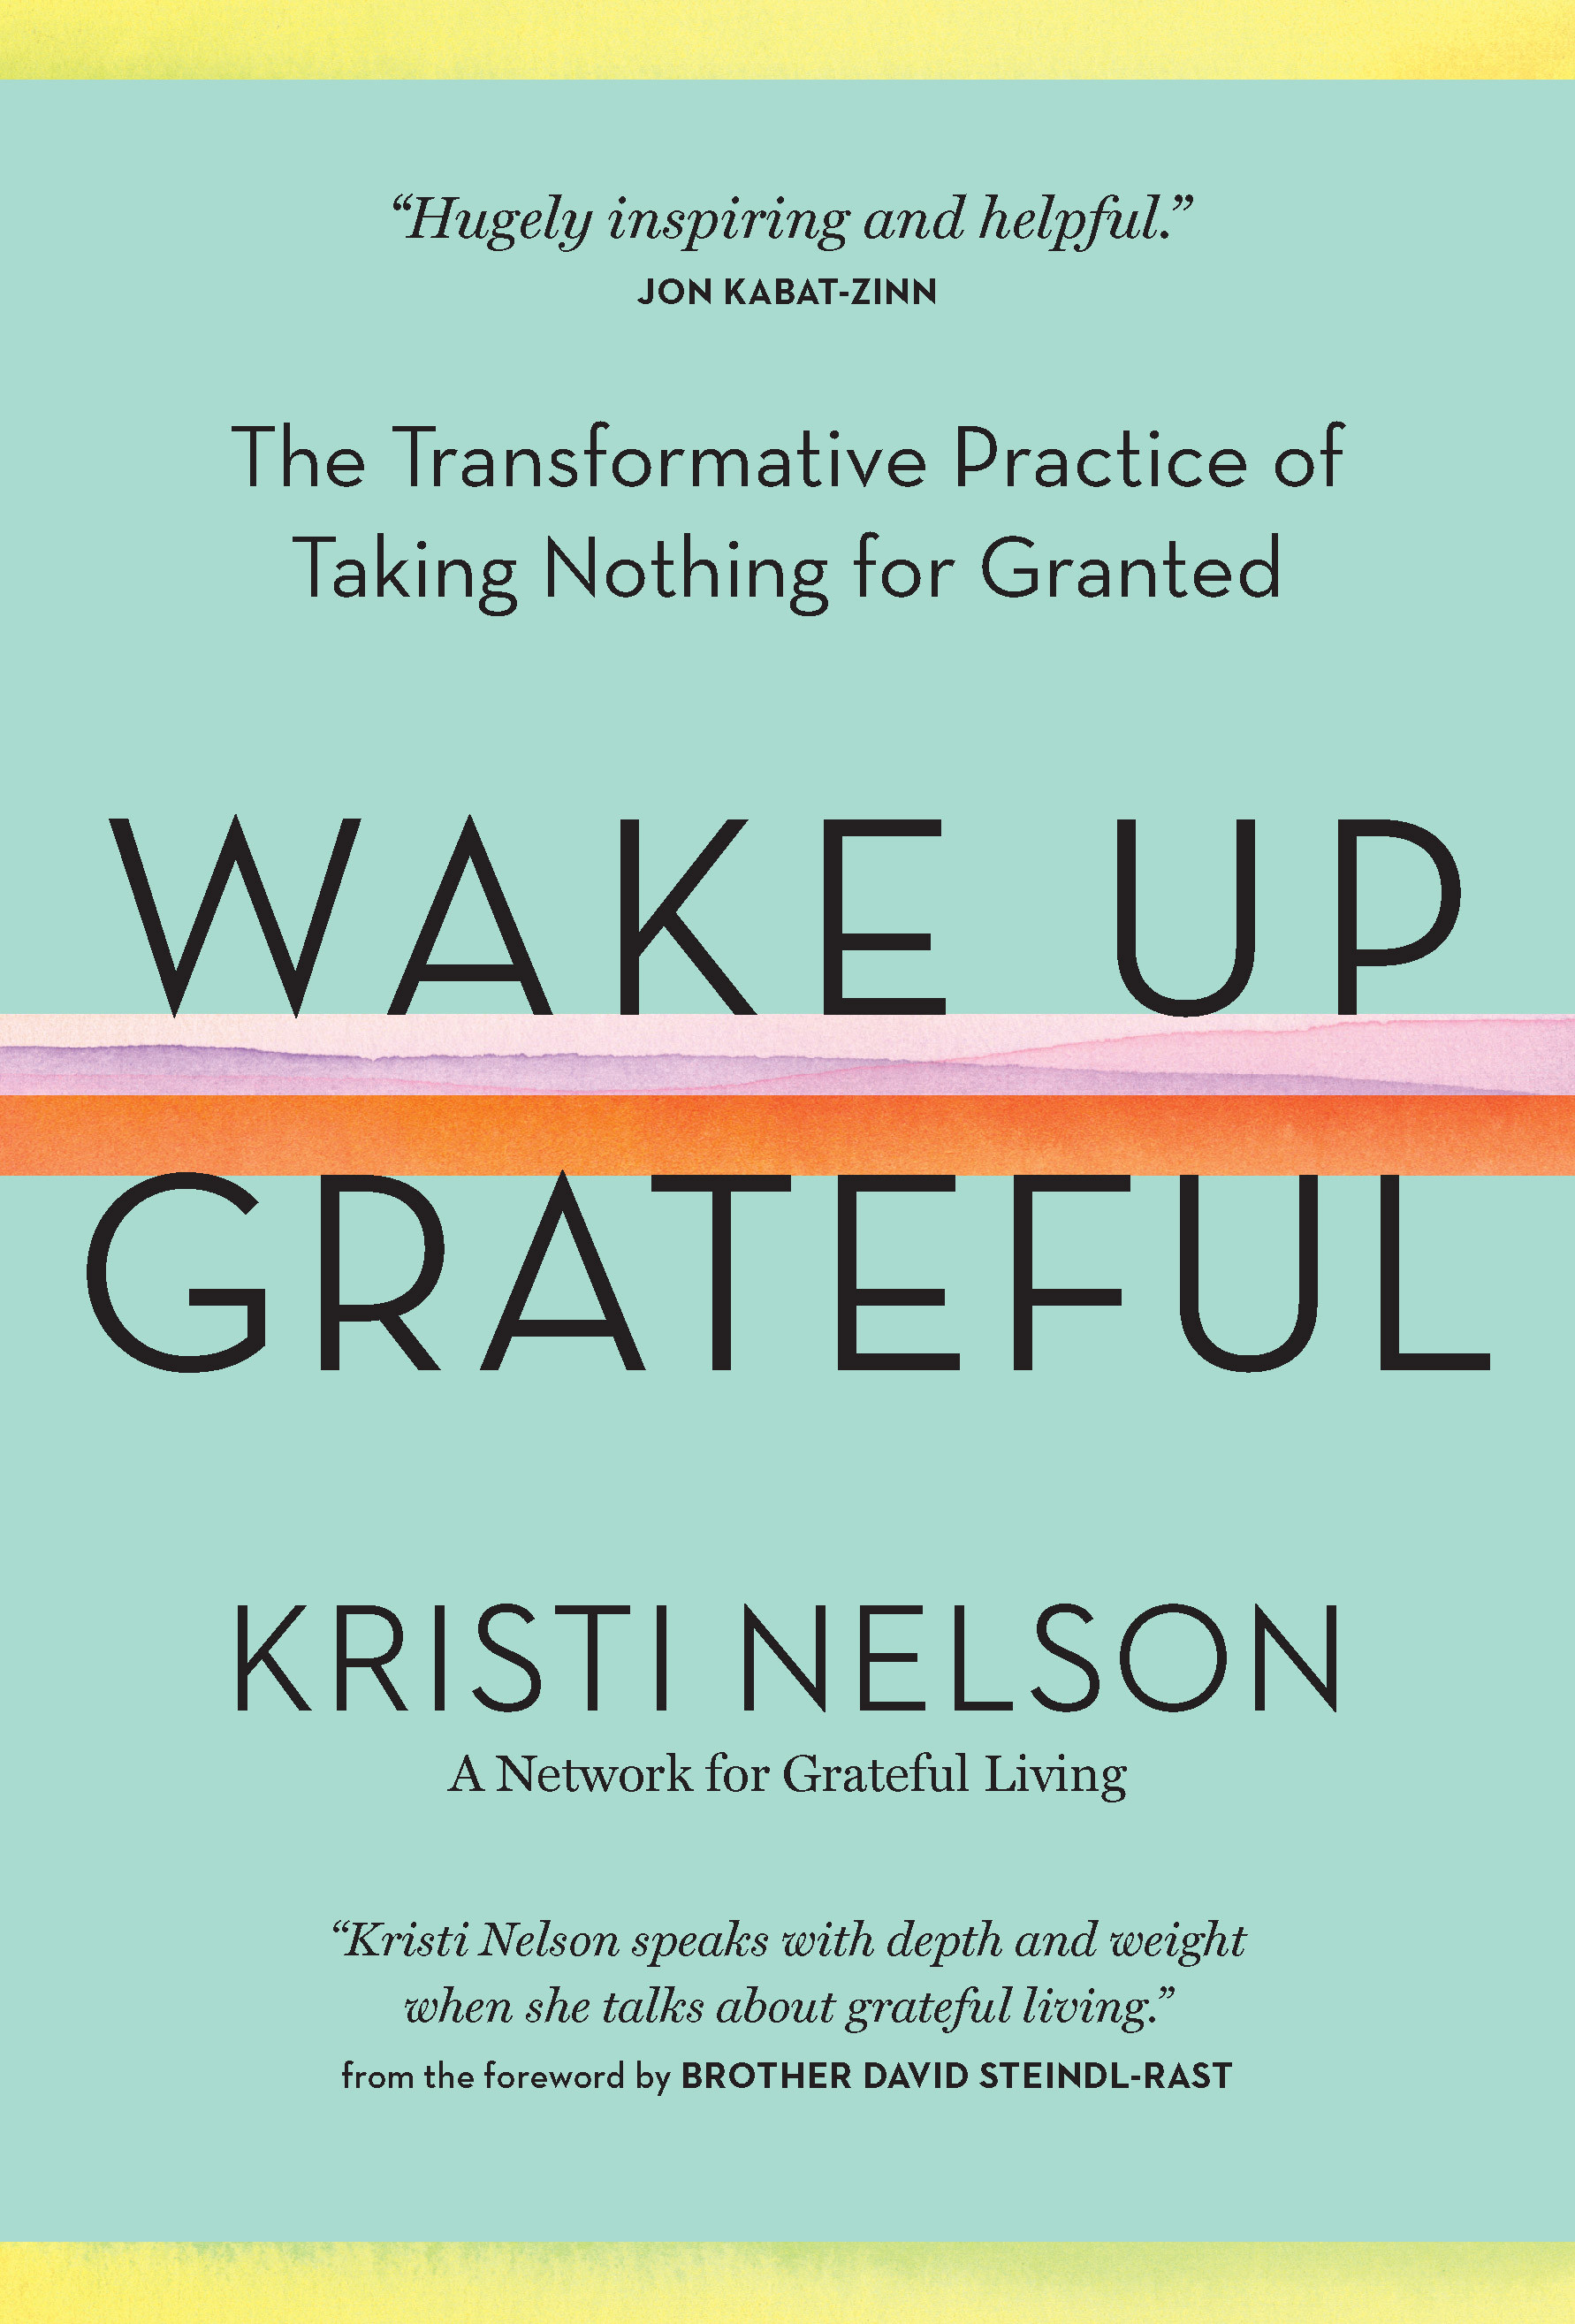 Wake Up Grateful The Transformative Practice of Taking Nothing for Granted - Kristi Nelson